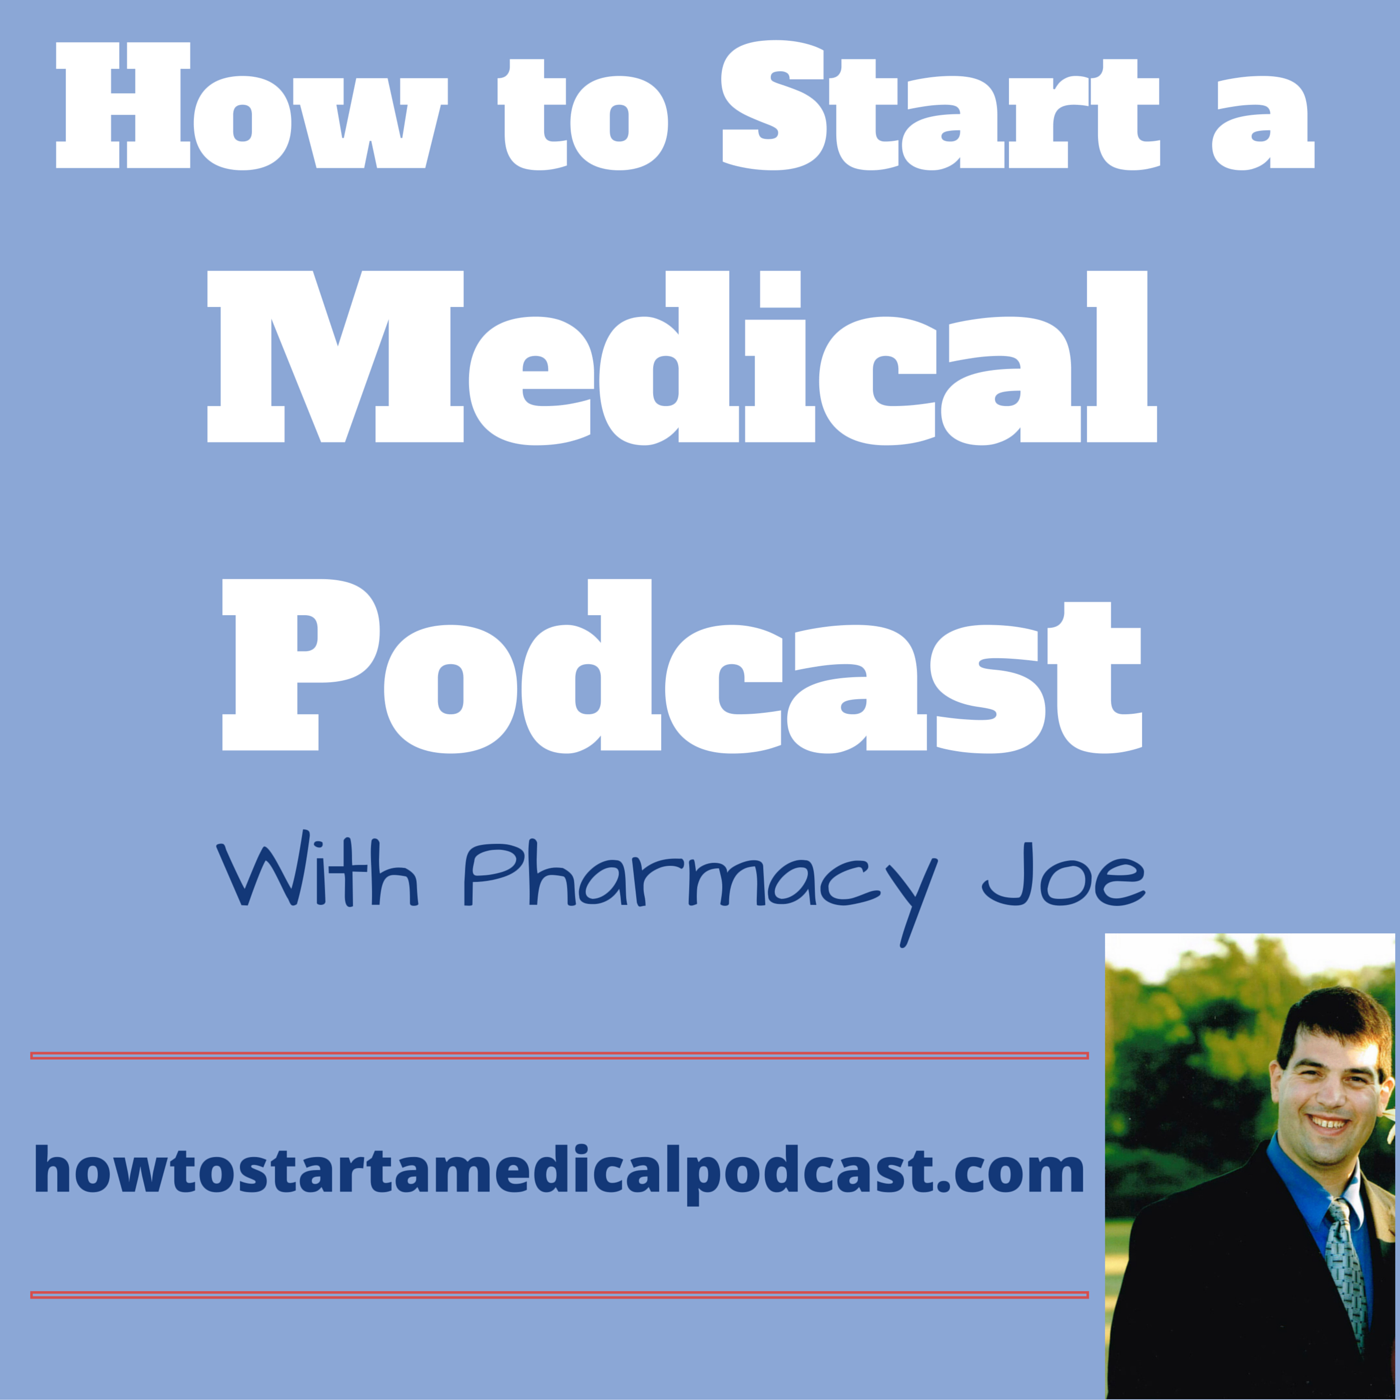 How To Start A Medical Podcast